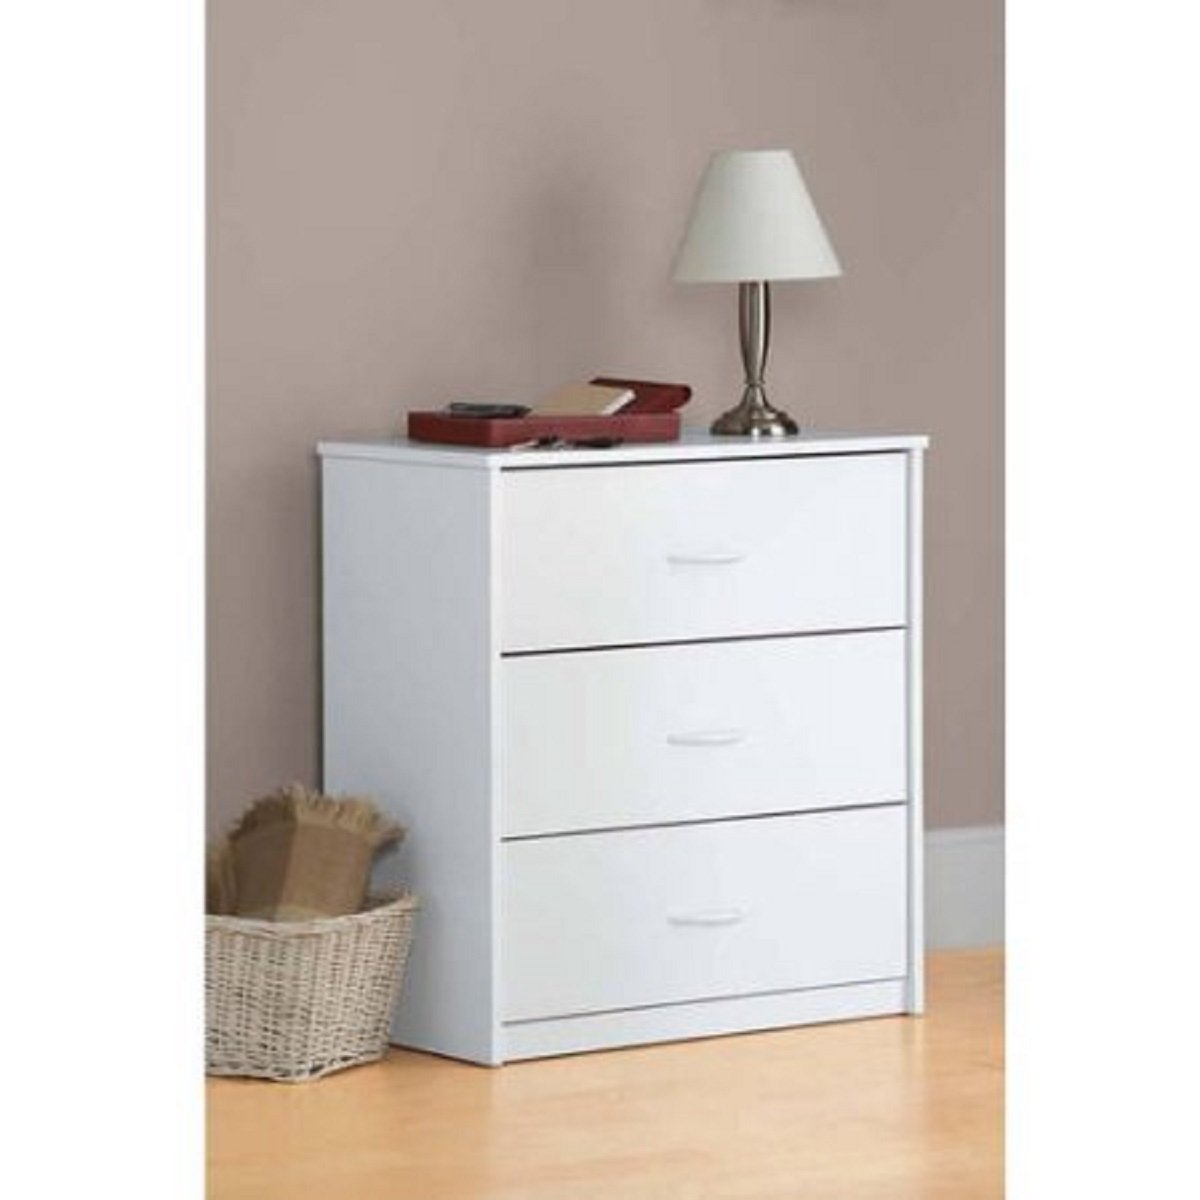 Mainstays 3-Drawer Dresser 3 easy-glide drawers (White) by Mainstay* (Image #2)